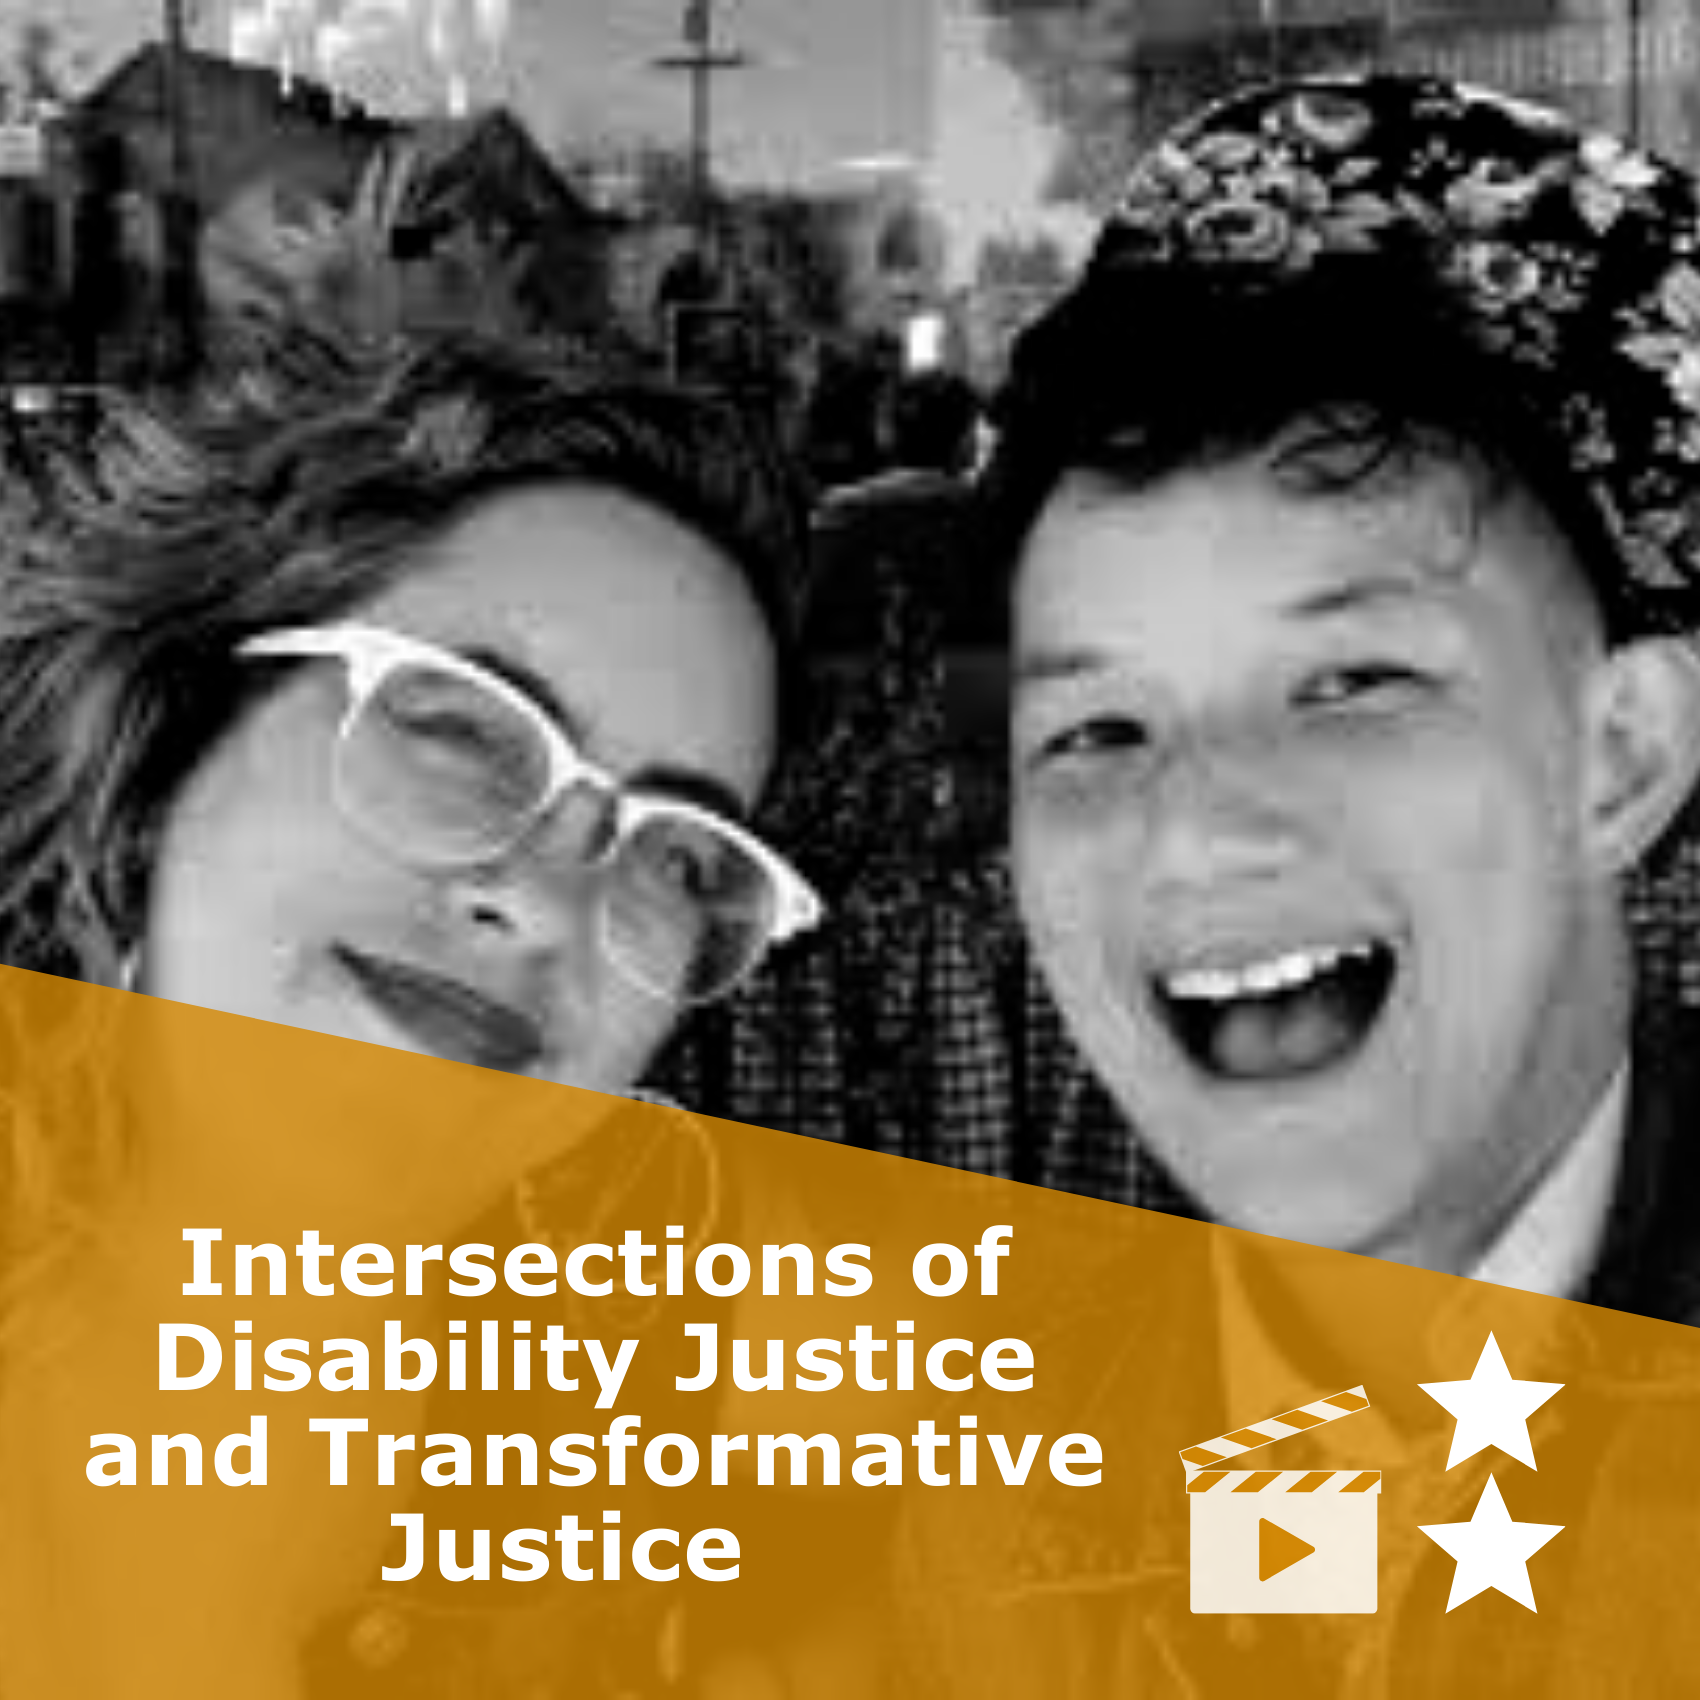 Title 'Intersections of Disability Justice and Transformative Justice'. It is a video rated 2 stars.